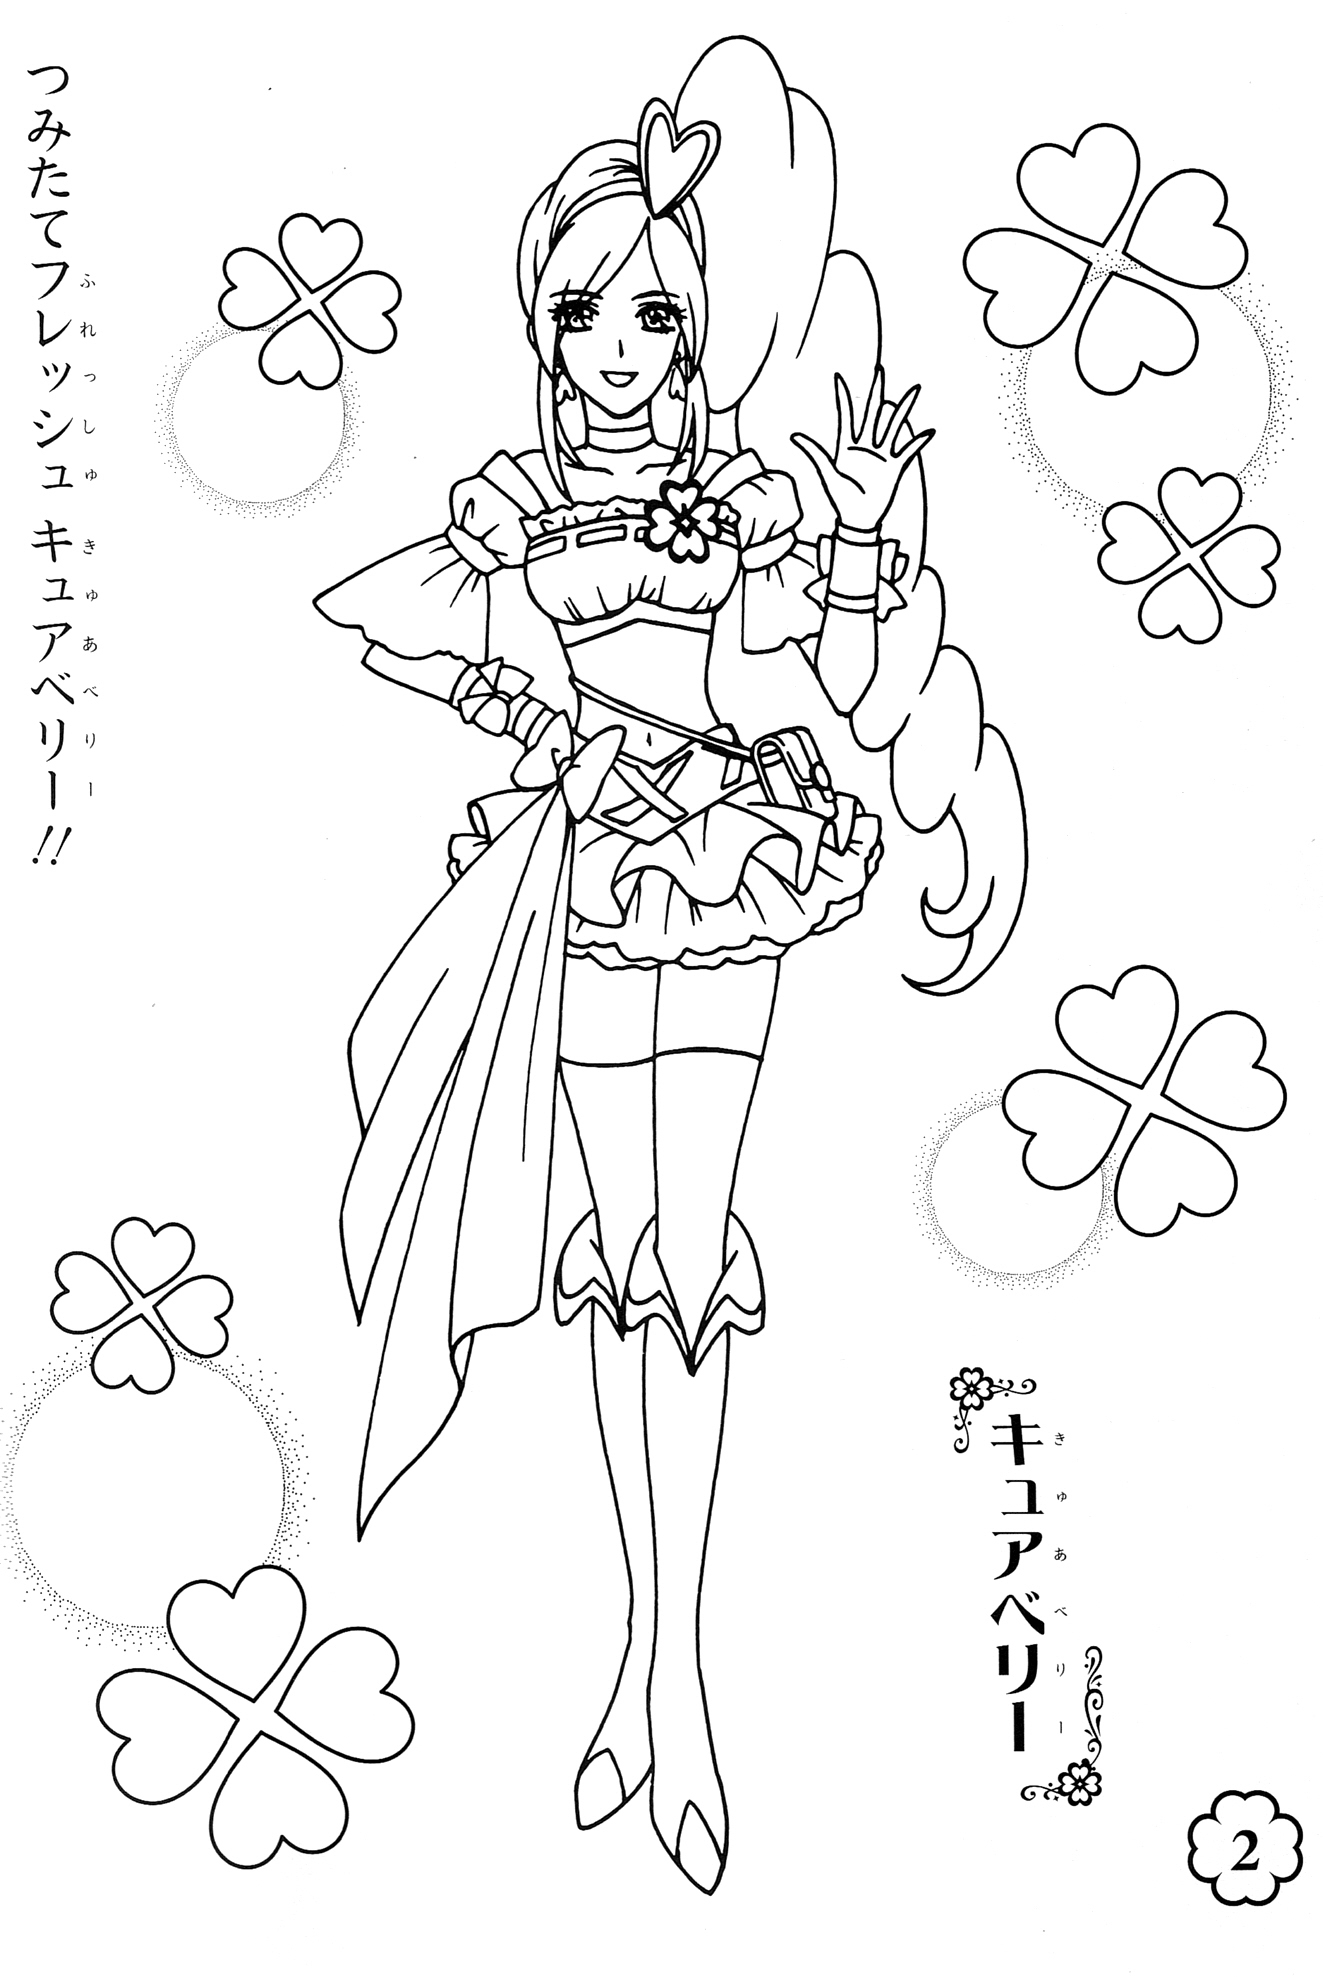 oasidelleanime precure coloring pages - photo #7